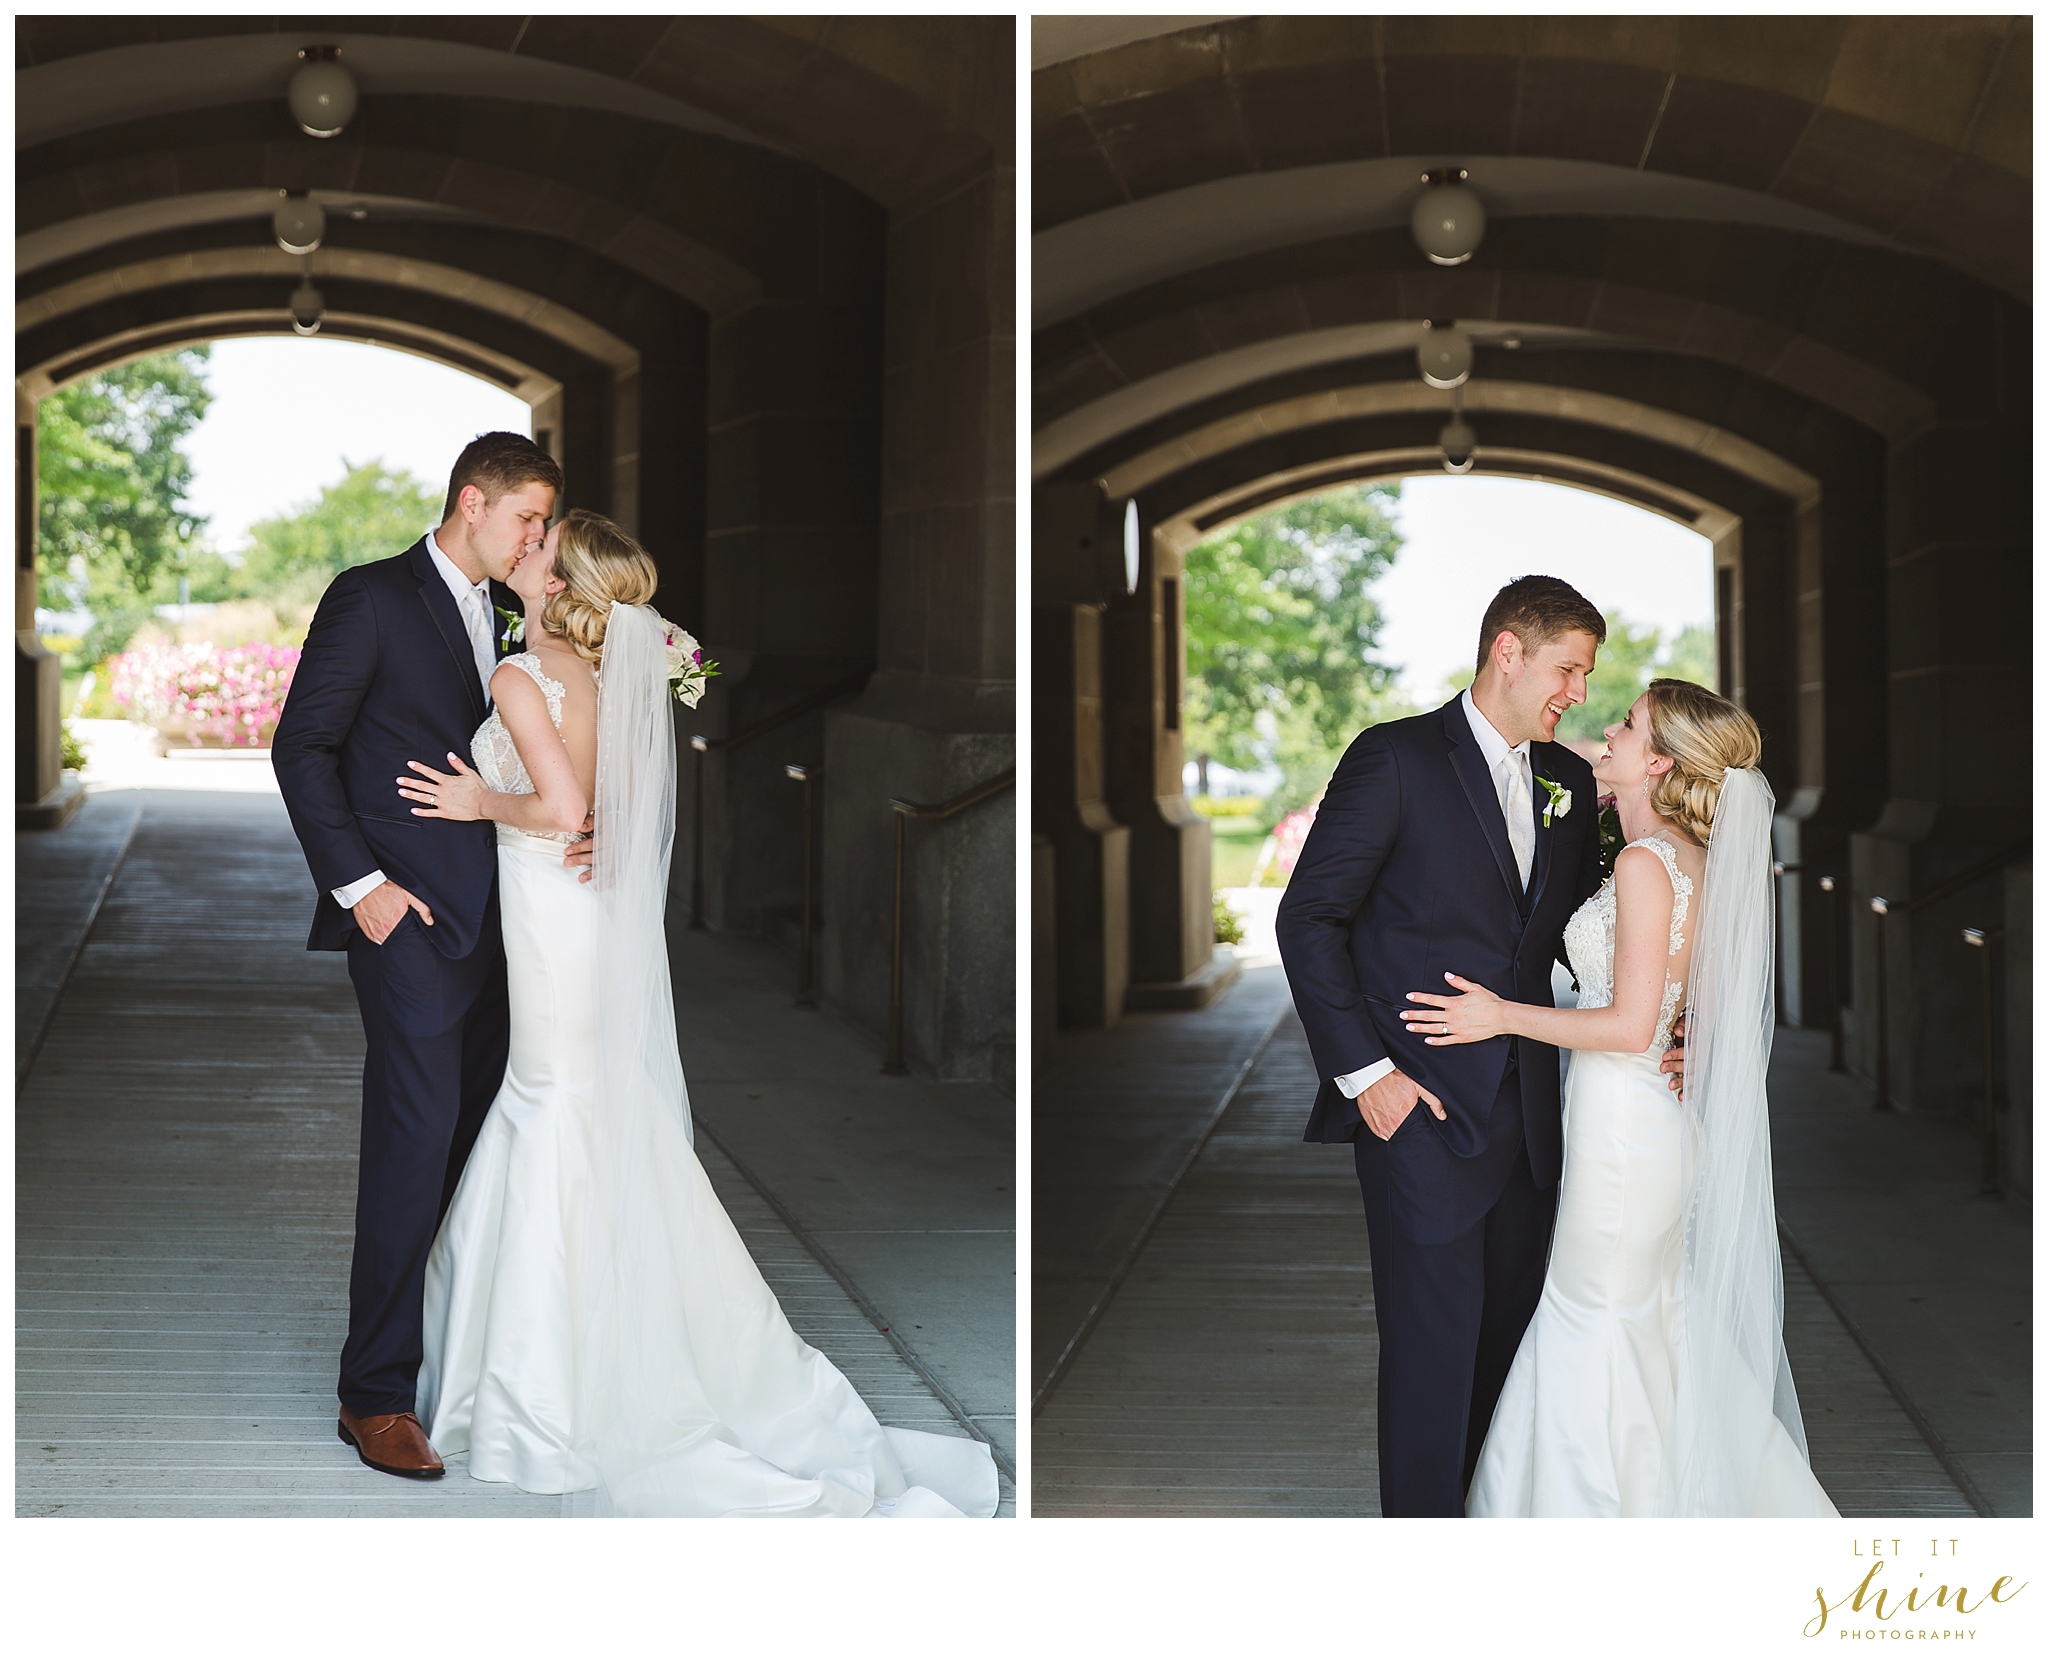 The Grove Hotel Boise Wedding 2017 Let it Shine Photography-8581.jpg